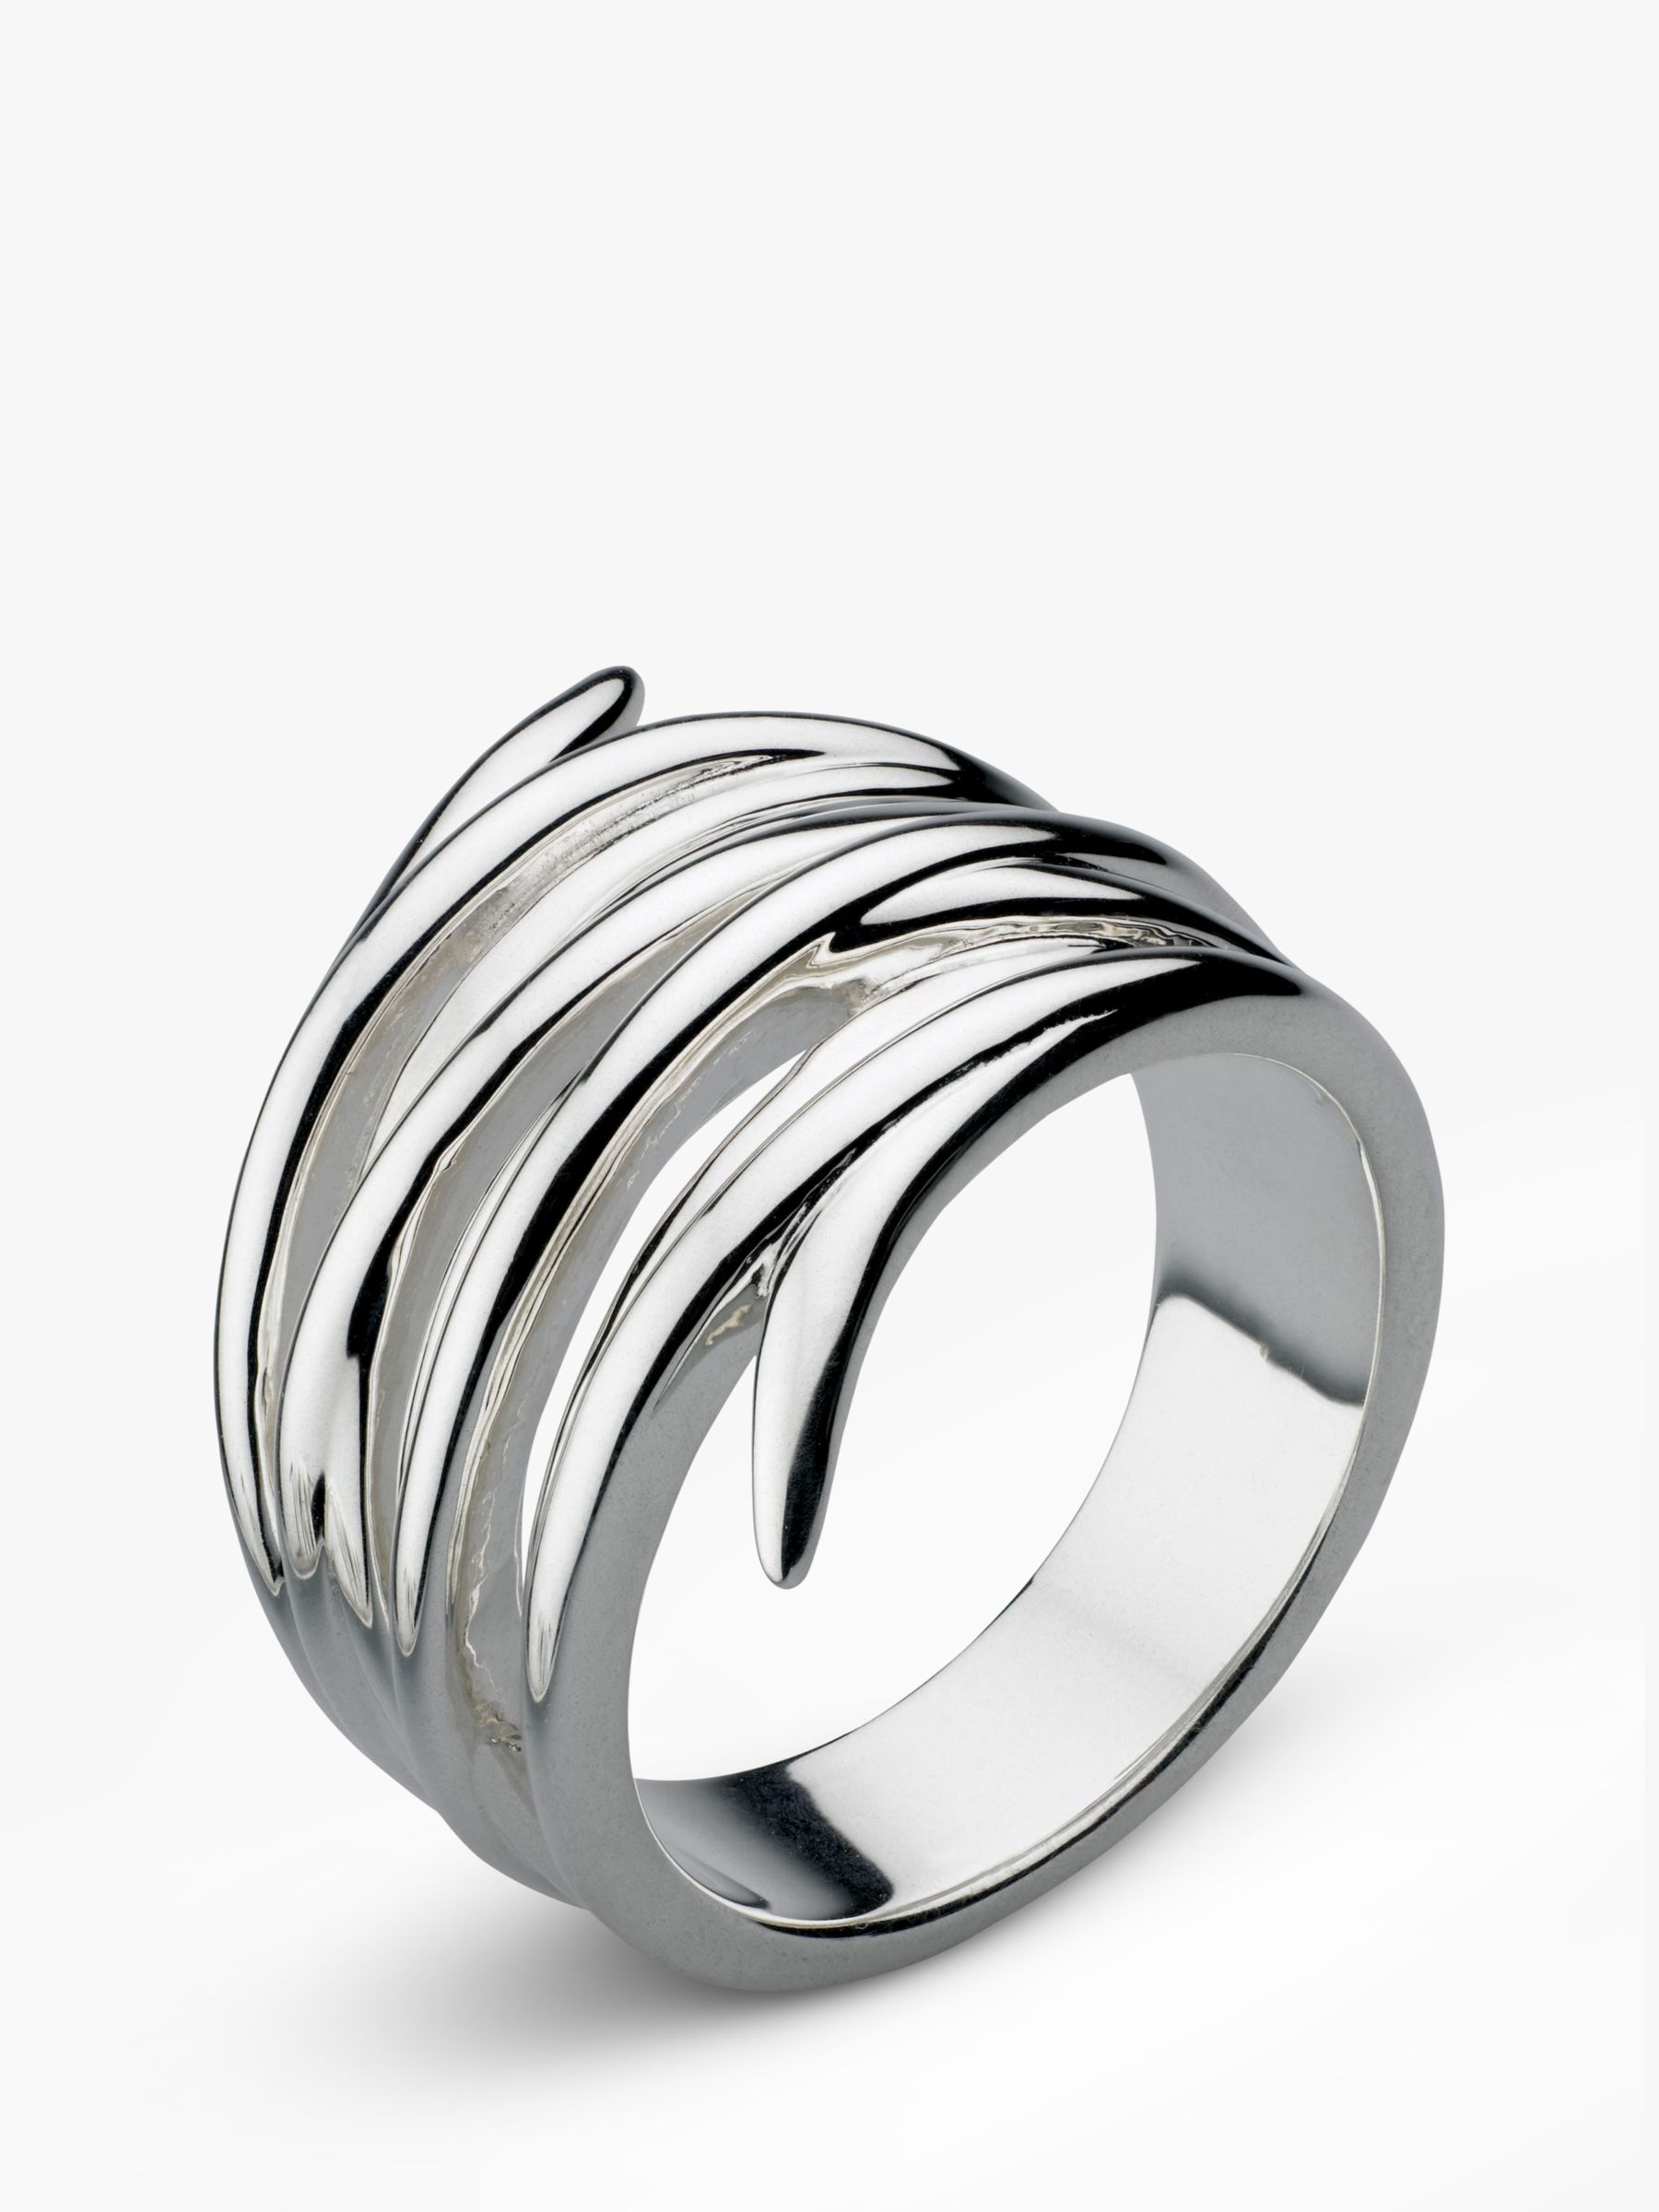 Kit Heath Kit Heath Twine Helix Wrap Ring, Silver